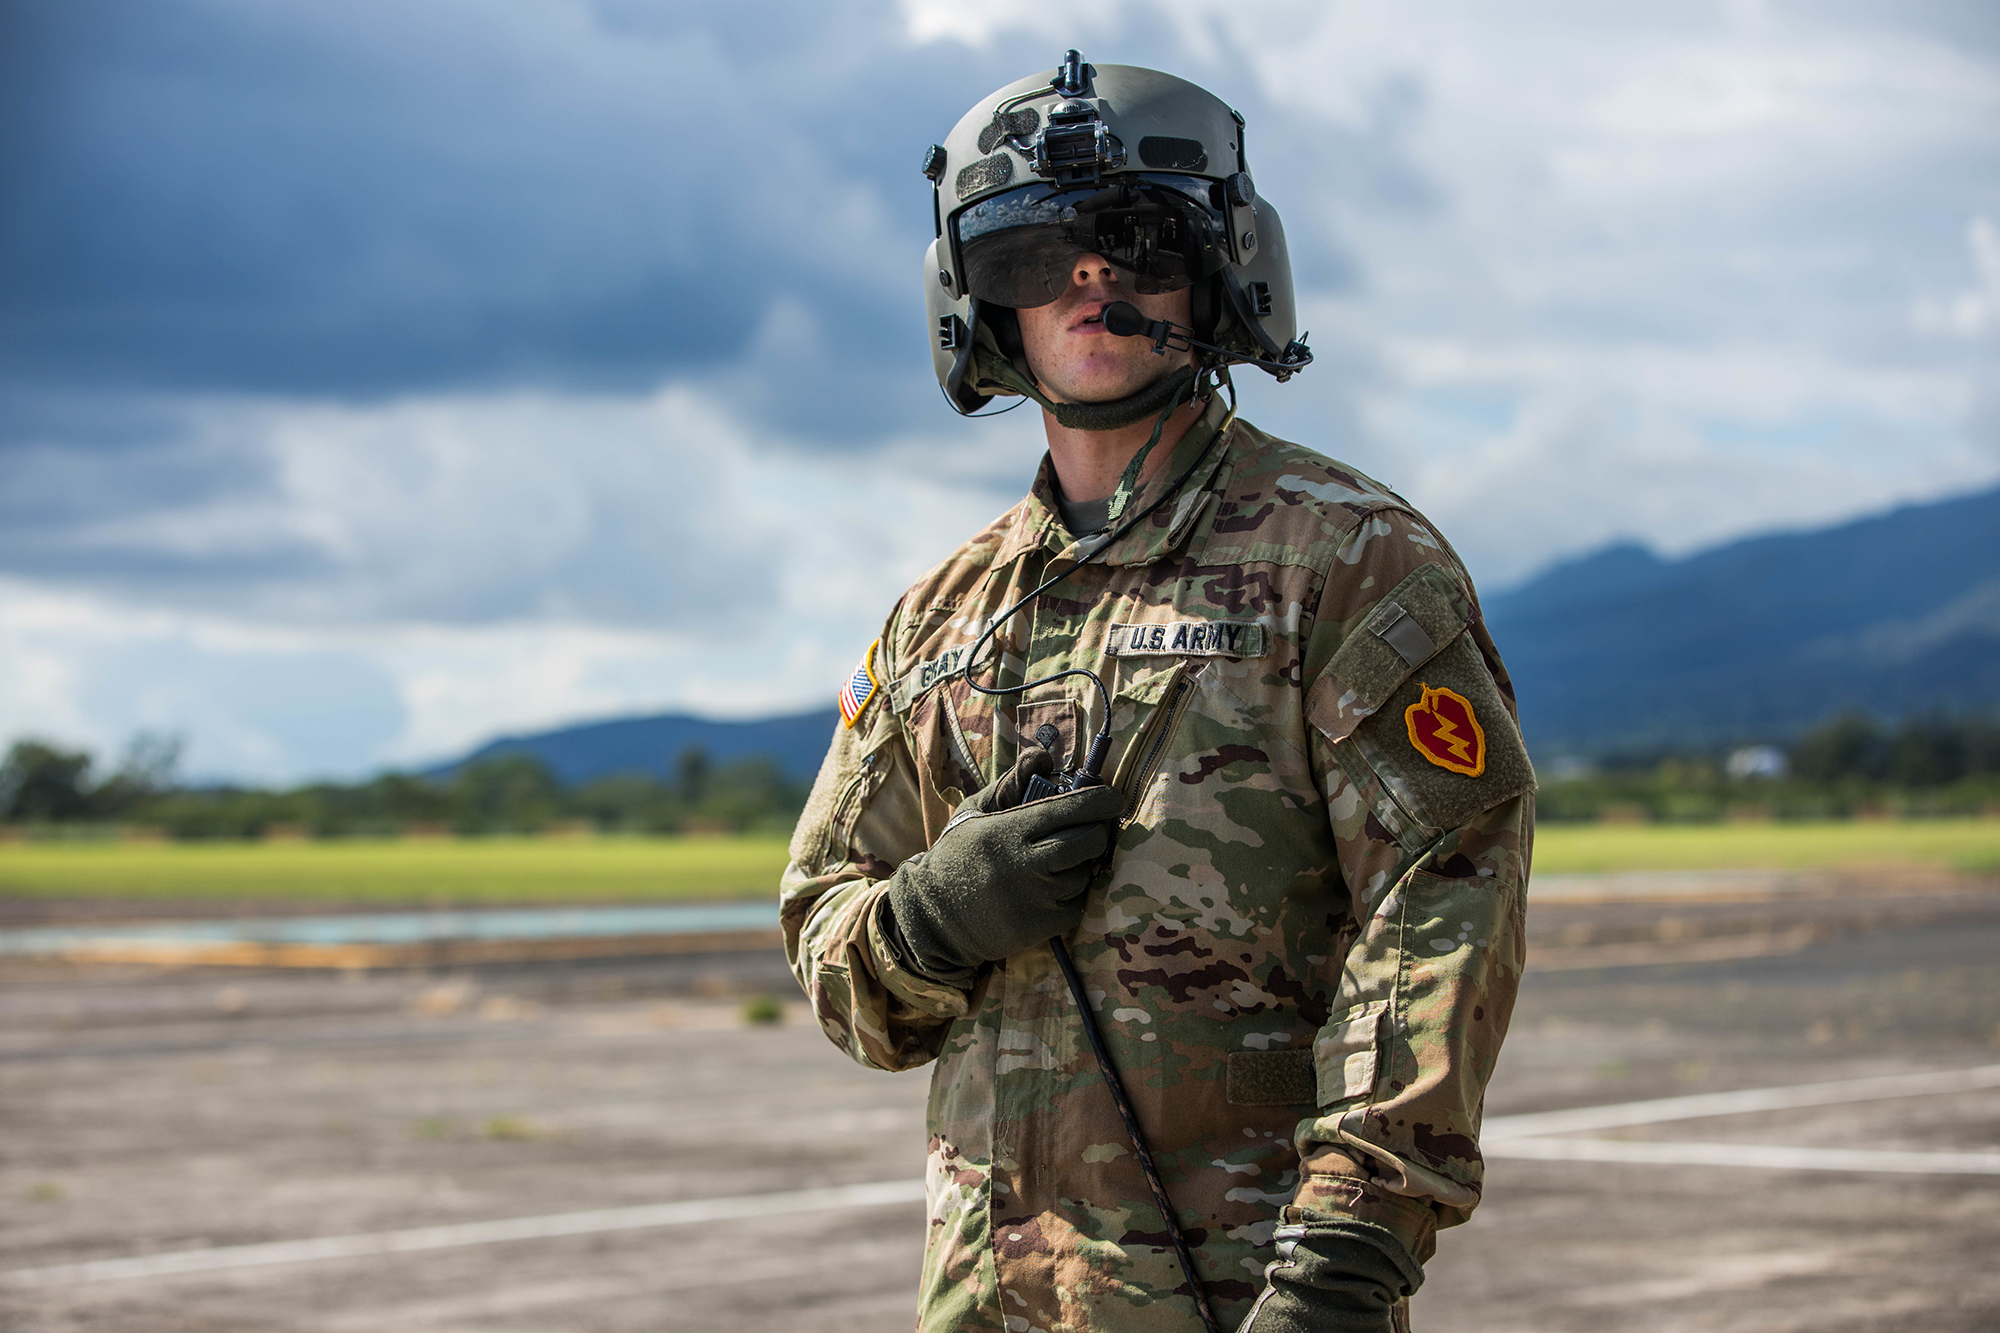 Spc. Jon Gray, a crew chief with 25th Combat Aviation Brigade, gets ready for the official review of the 25th Infantry Division's soldiers, complete with flyover from 25th CAB helicopters Oct. 31, 2019, at Schofield Barracks, Hawaii. Soldiers wear the 25th Infantry Divisions colored patch during Tropic Lightning Week which is the first time it is displayed with the OCP uniform. (Sgt. Sarah D. Sangster/Army)